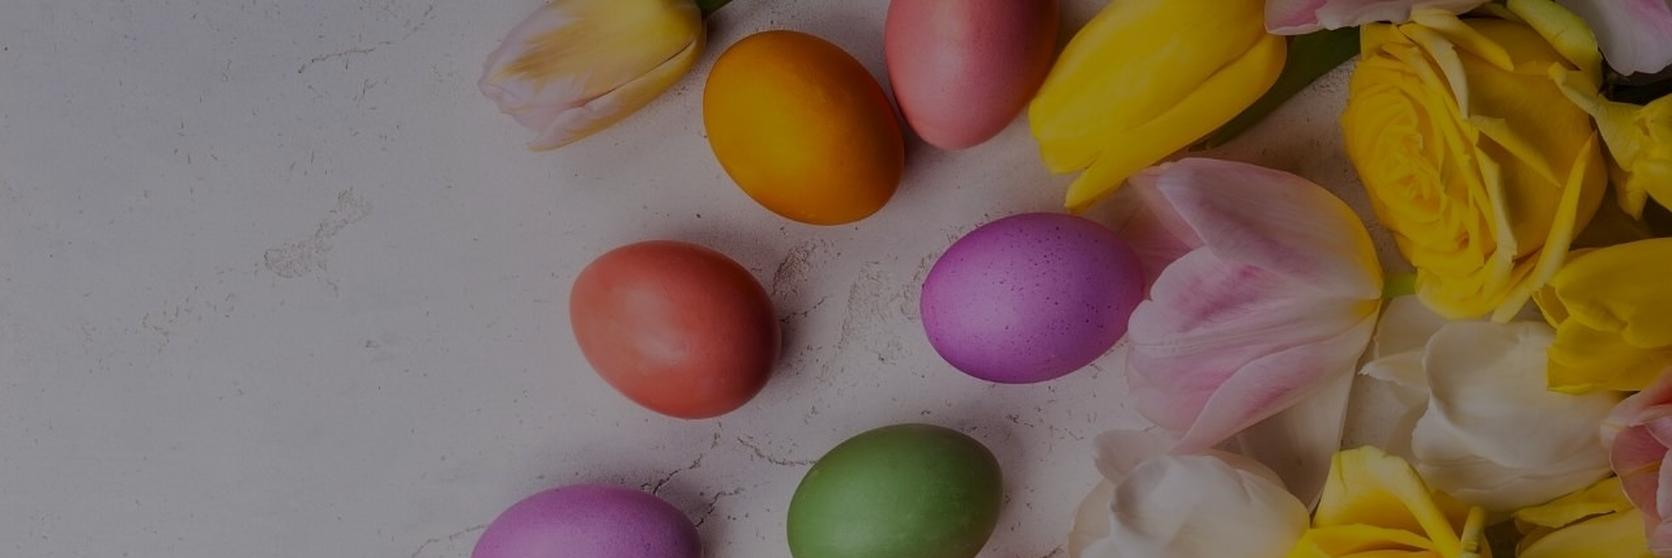 Ways-to-celebrate-easter-when-social-distancing-1